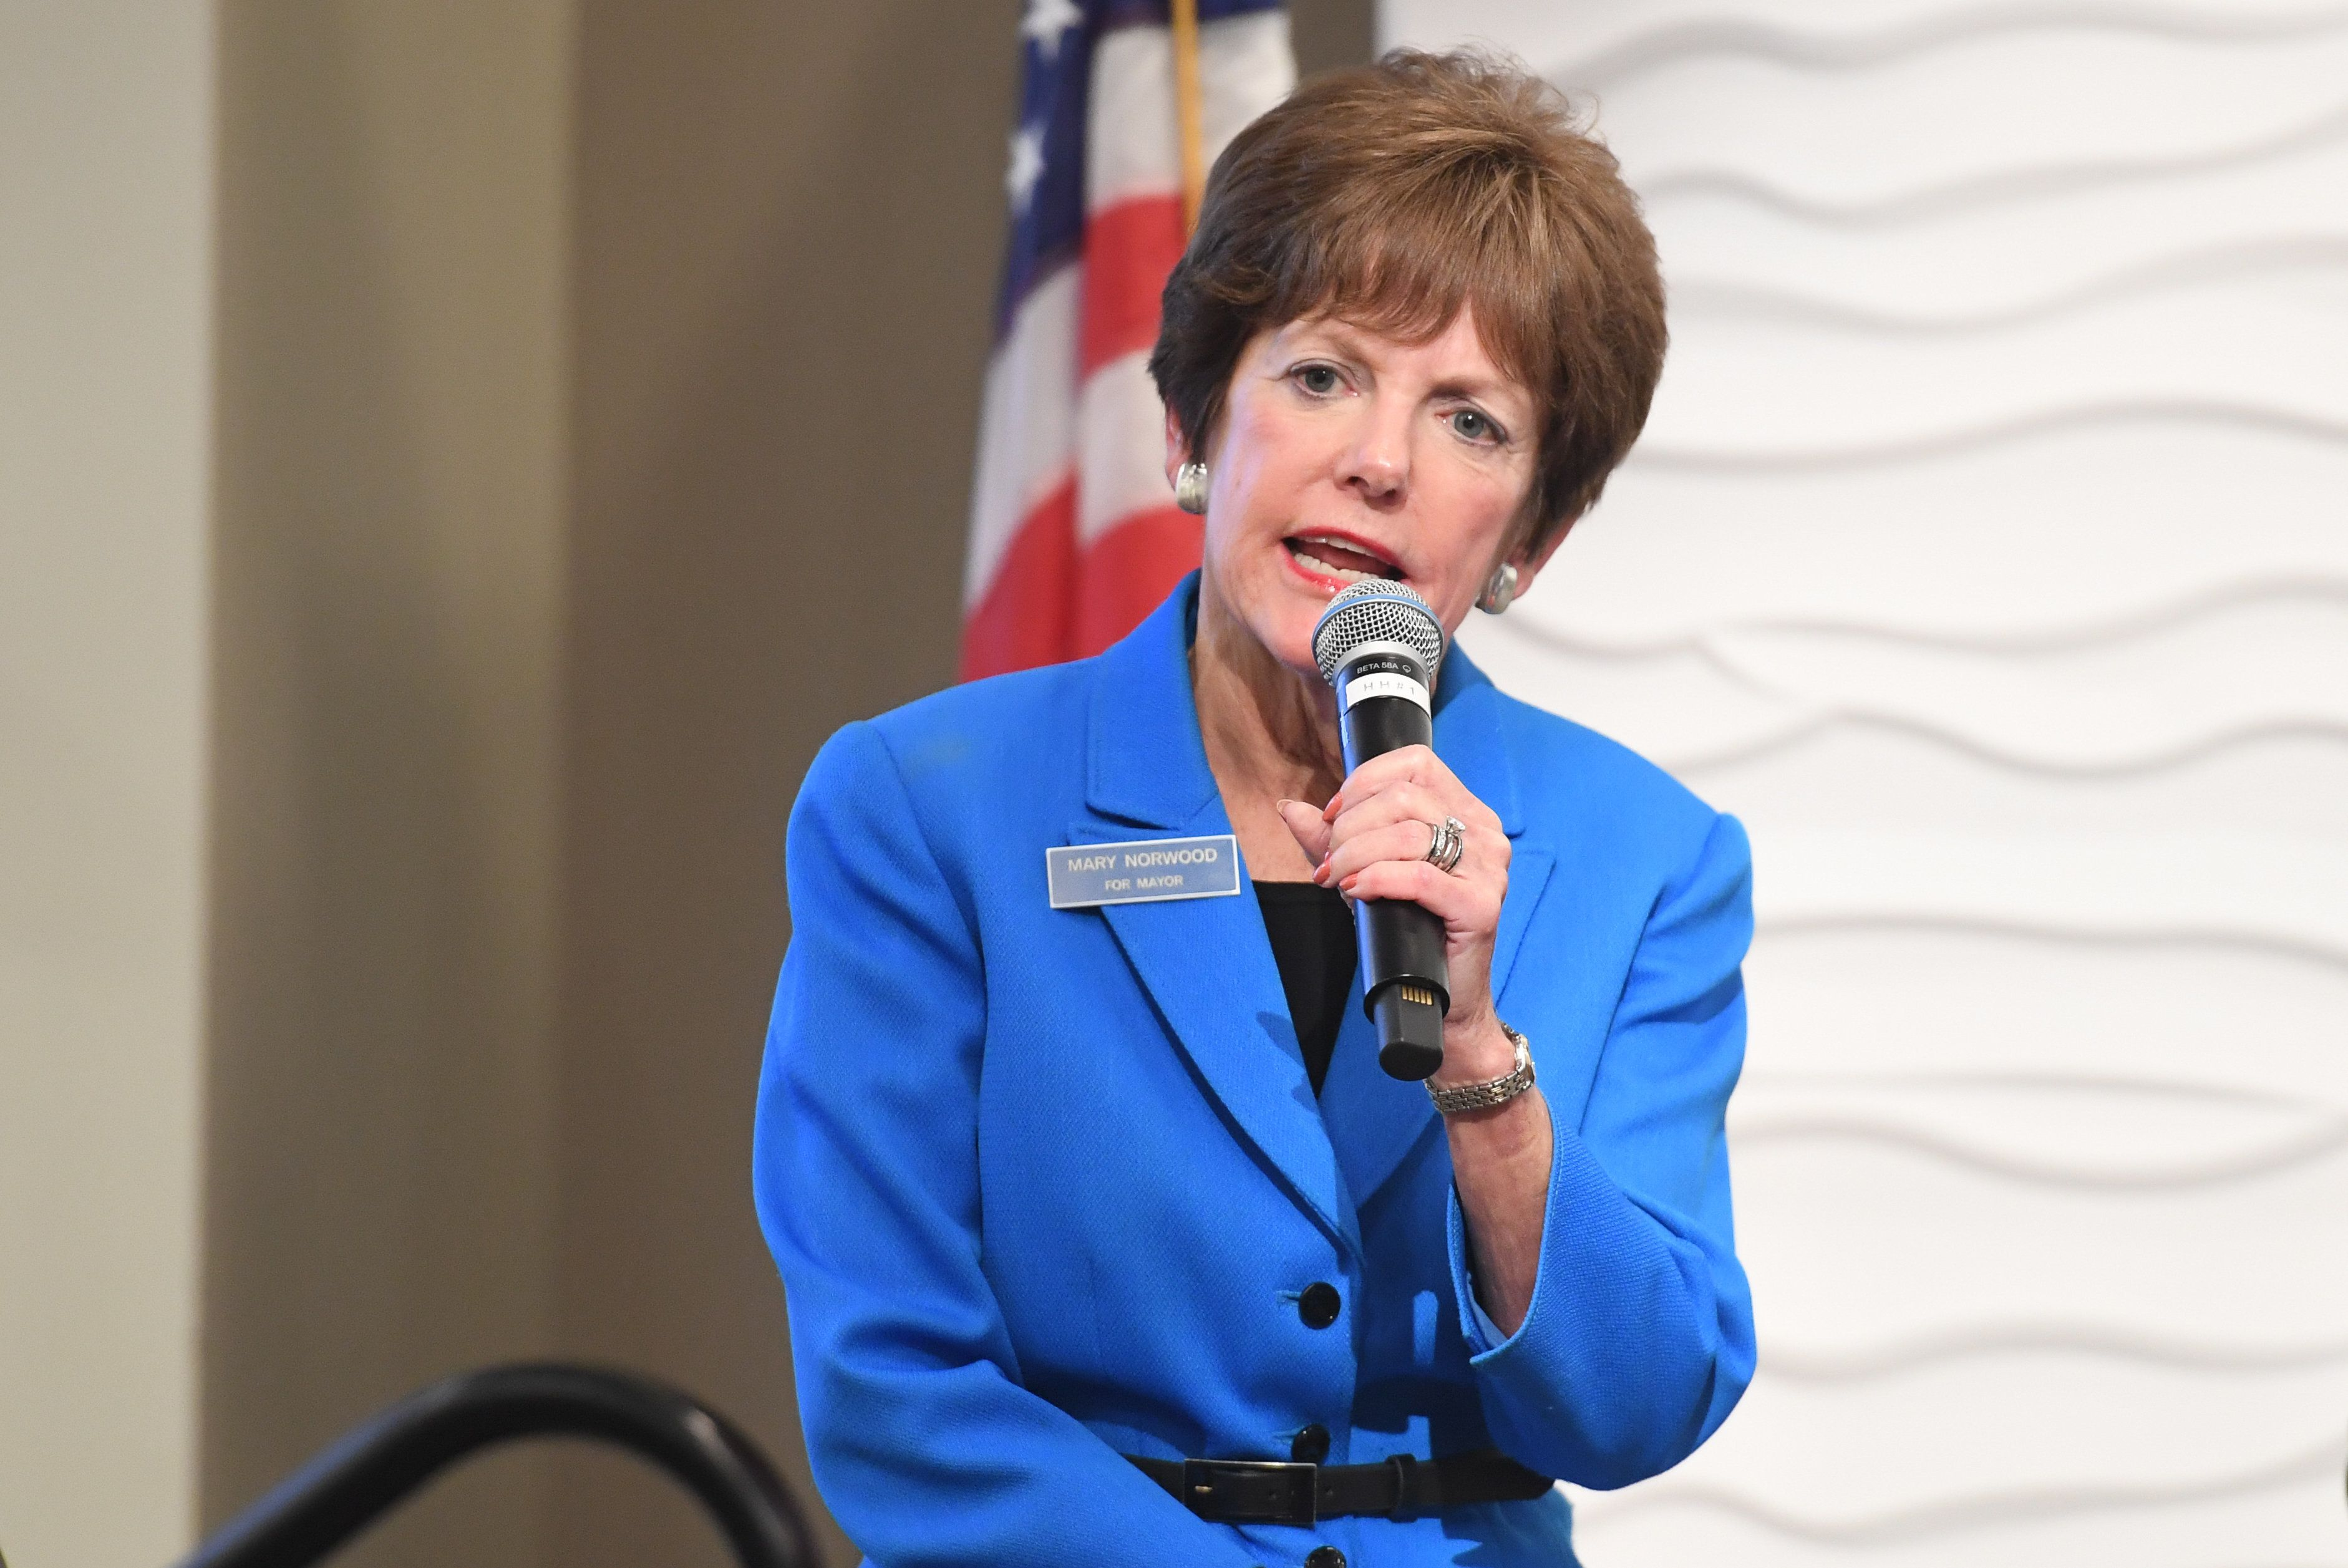 ATLANTA, GA - SEPTEMBER 05:  Mary Norwood speaks onstage at 2017 ONE Music Fest - Atlanta Mayoral Forum at Loudermilk Conference Center on September 5, 2017 in Atlanta, Georgia.  (Photo by Paras Griffin/Getty Images)